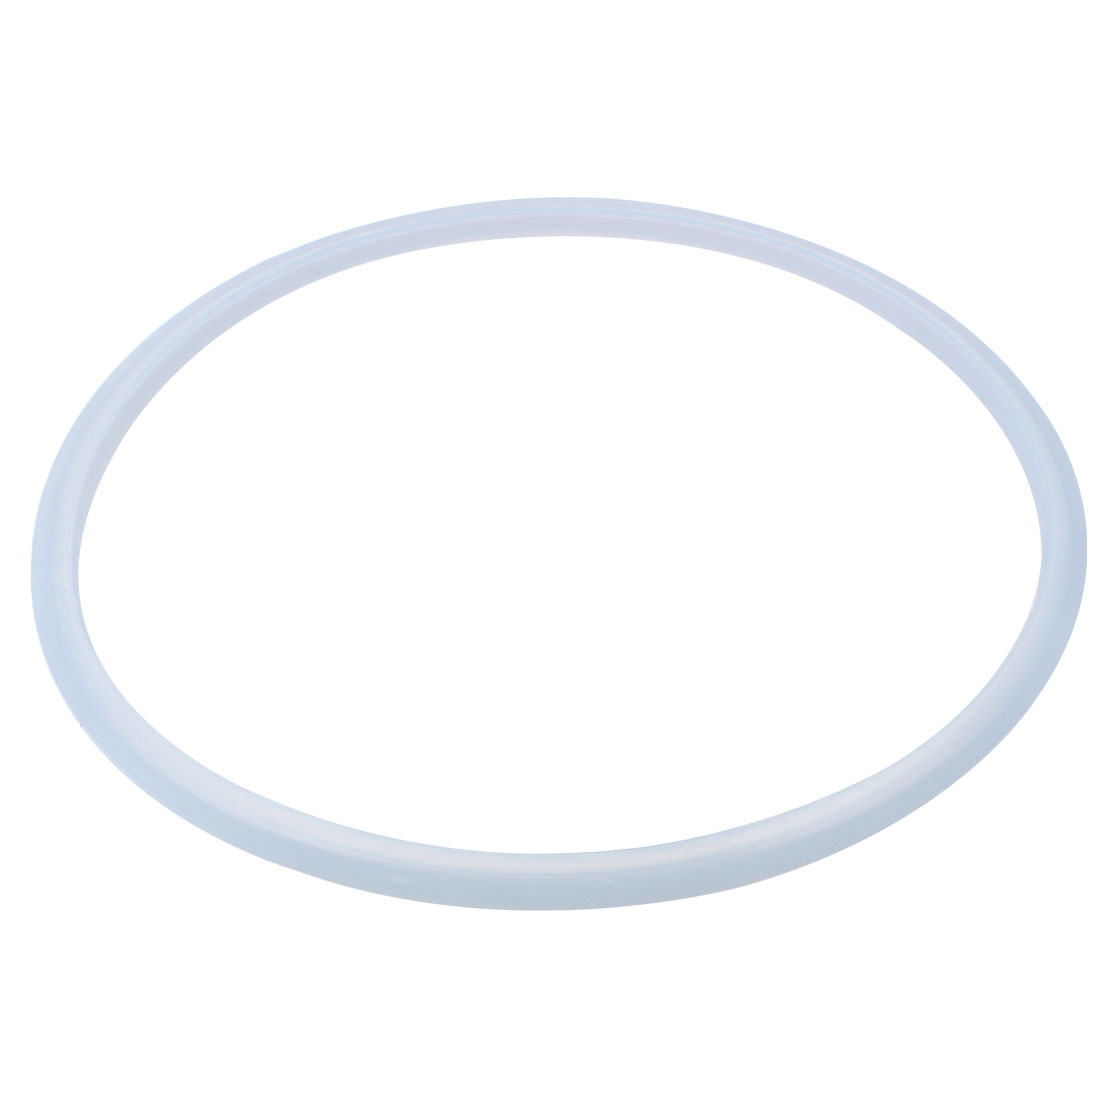 Home Rubber Pressure Cooker Part Gasket Sealing Ring 26cm Inner Dia White